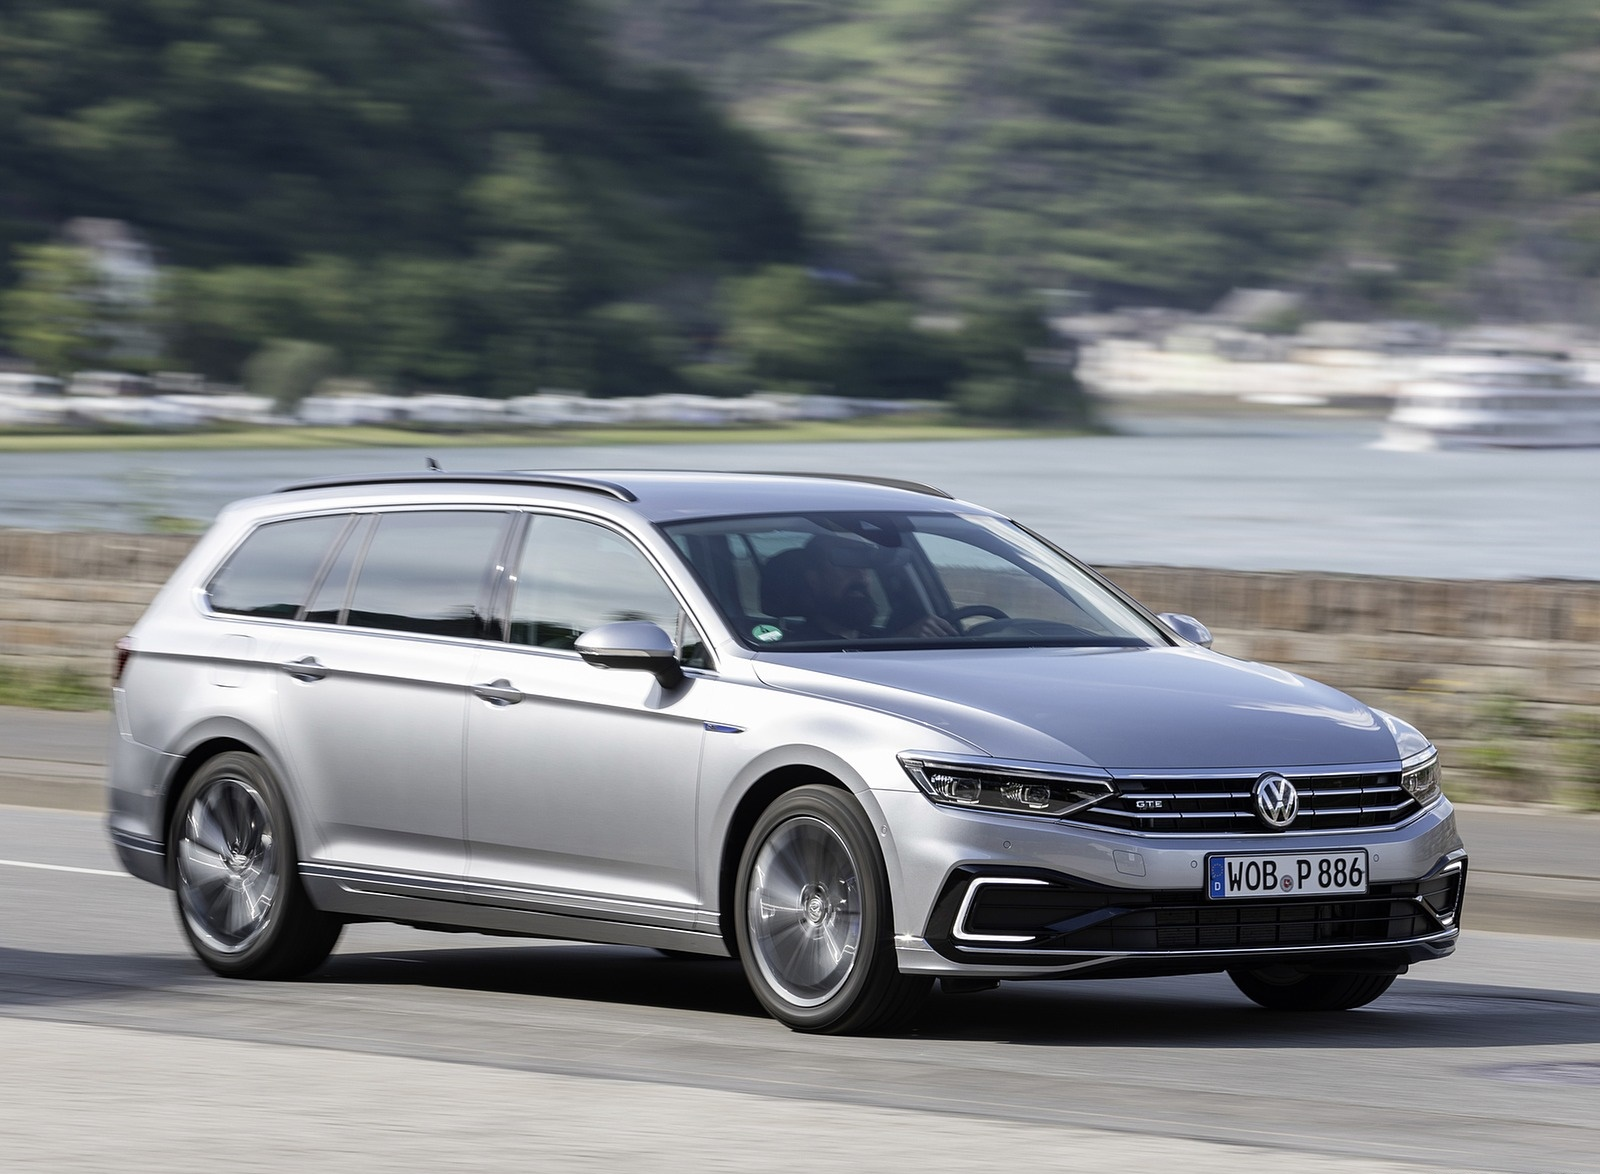 2020 Volkswagen Passat GTE Variant (Plug-In Hybrid EU-Spec) Front Three-Quarter Wallpapers (4)